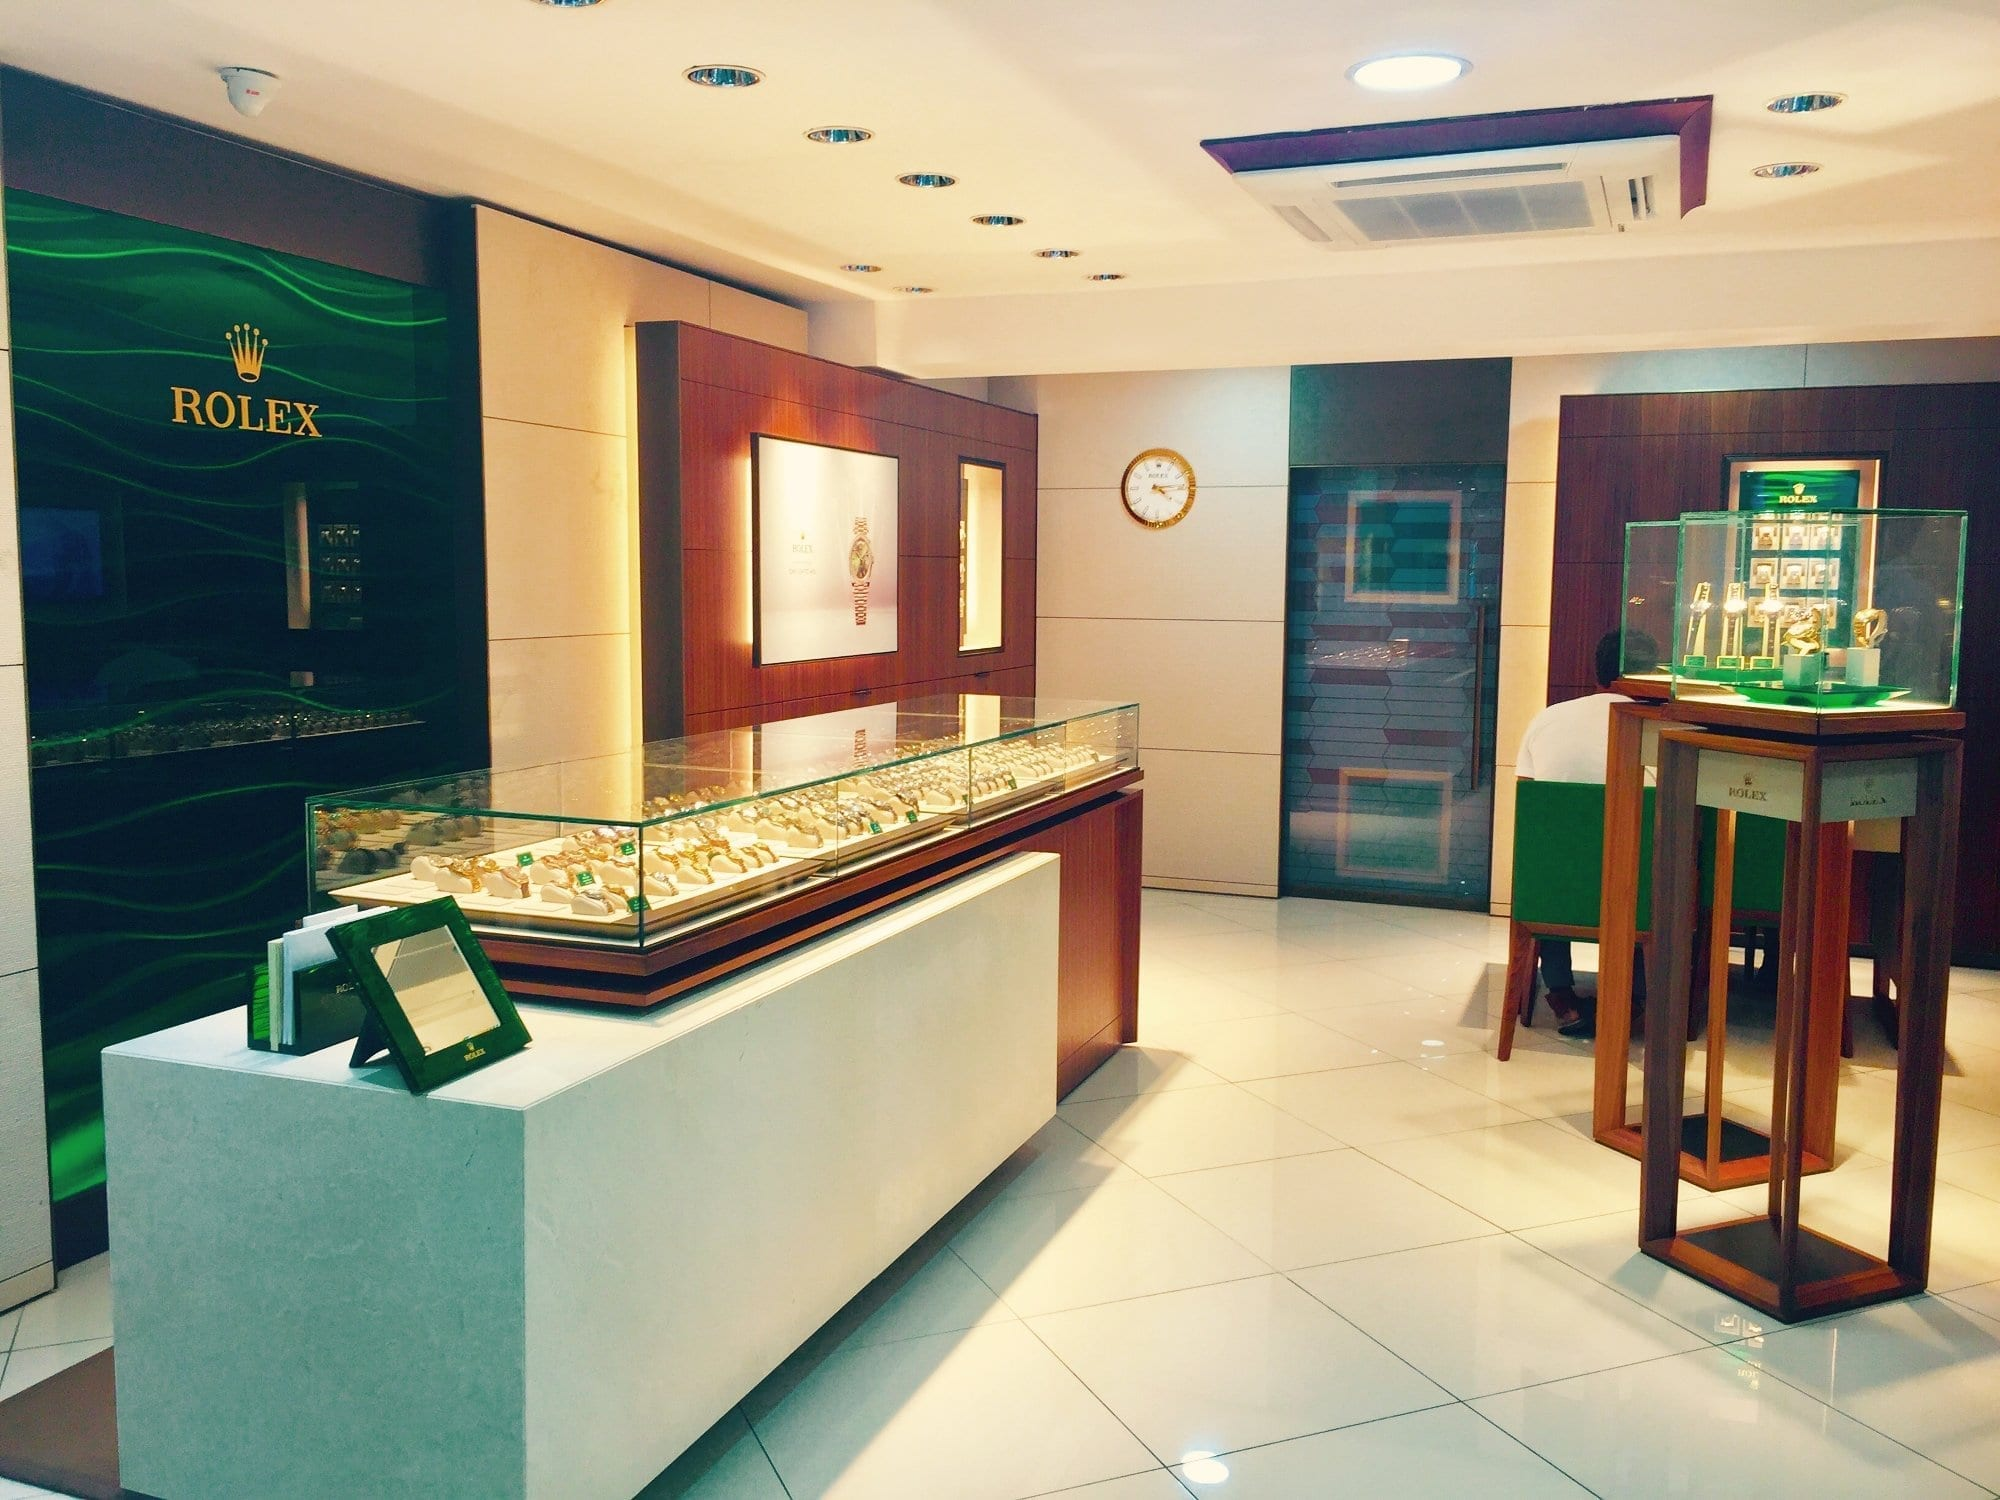 Rolex Available at the Royal Shop in Barbados.